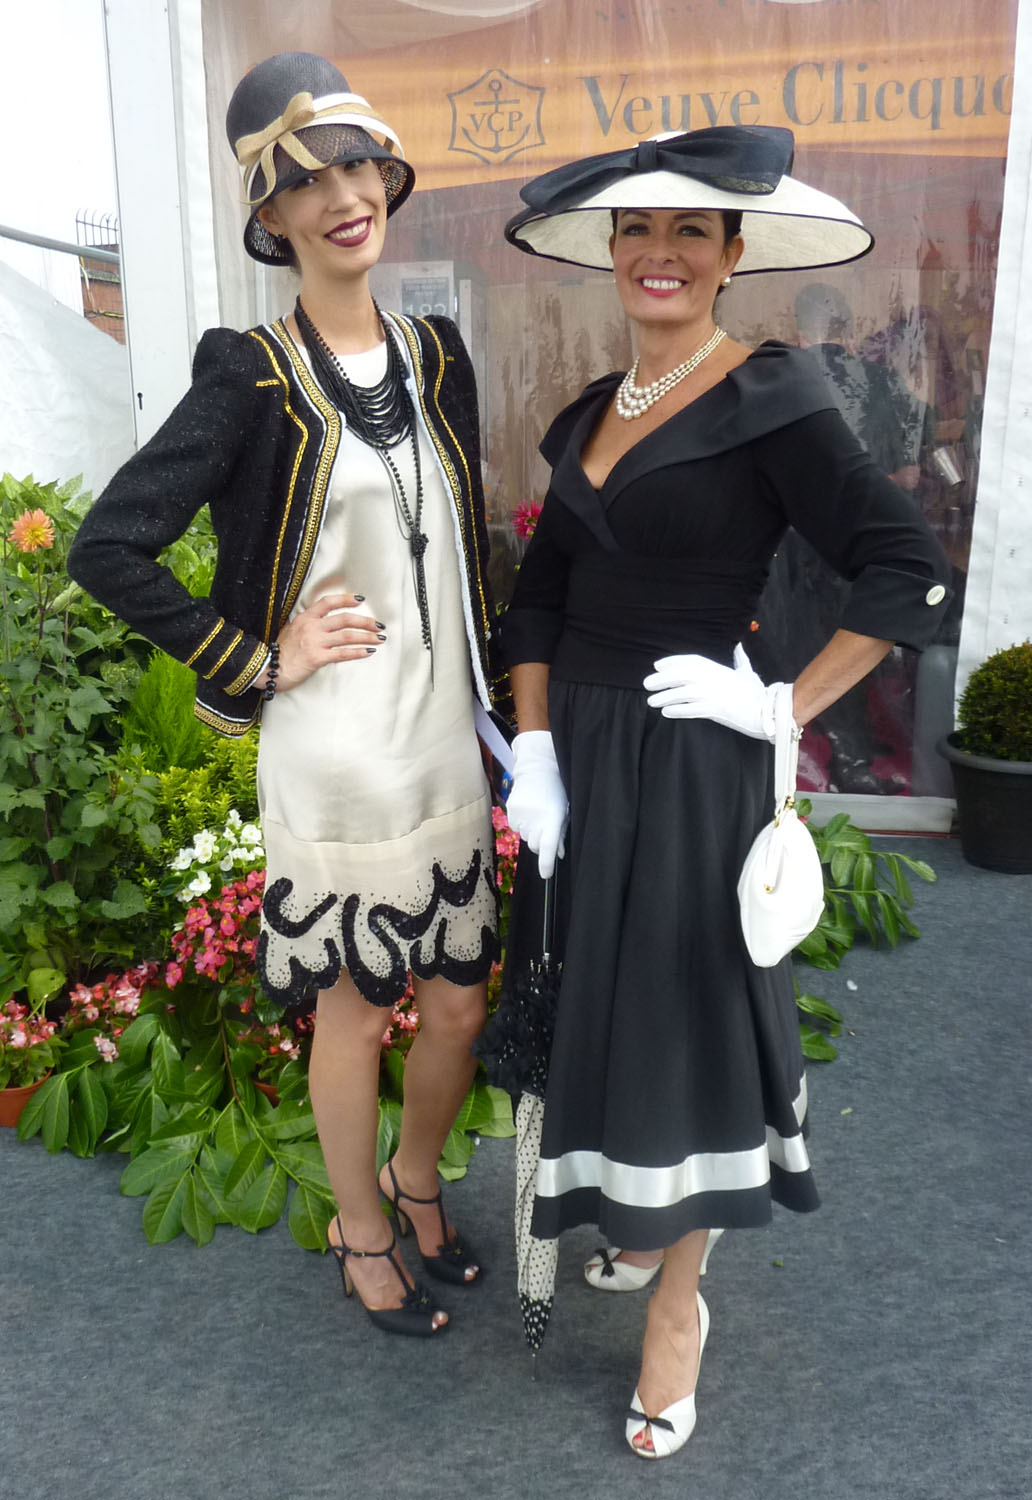 Comparing vintage-styled outfits with Annemarie Leake, winner of the Best Dressed Mature Lady award.